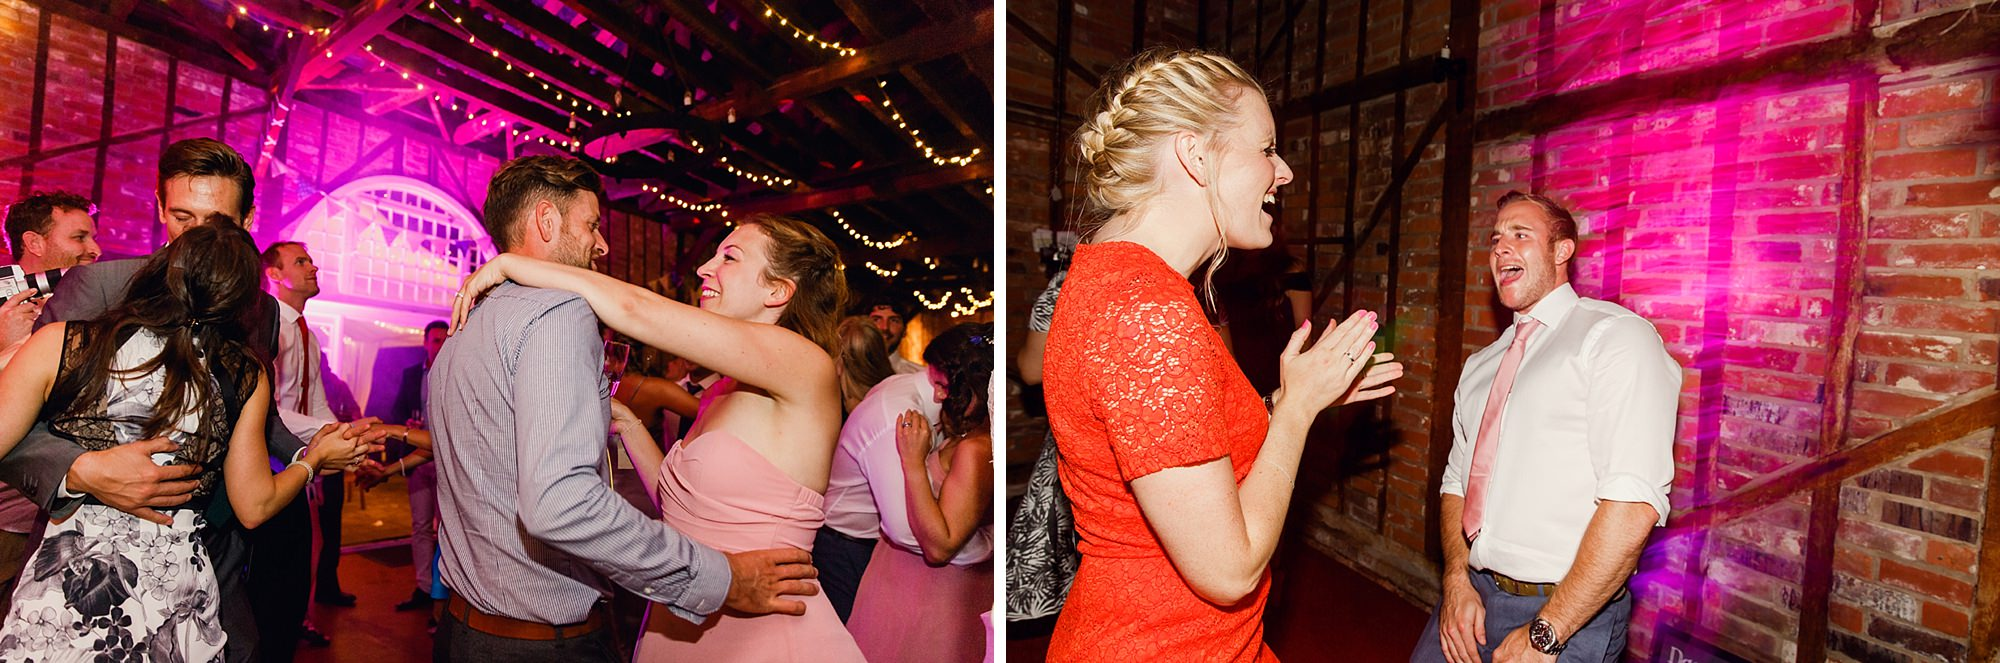 Marks Hall Estate wedding photography dancing guests